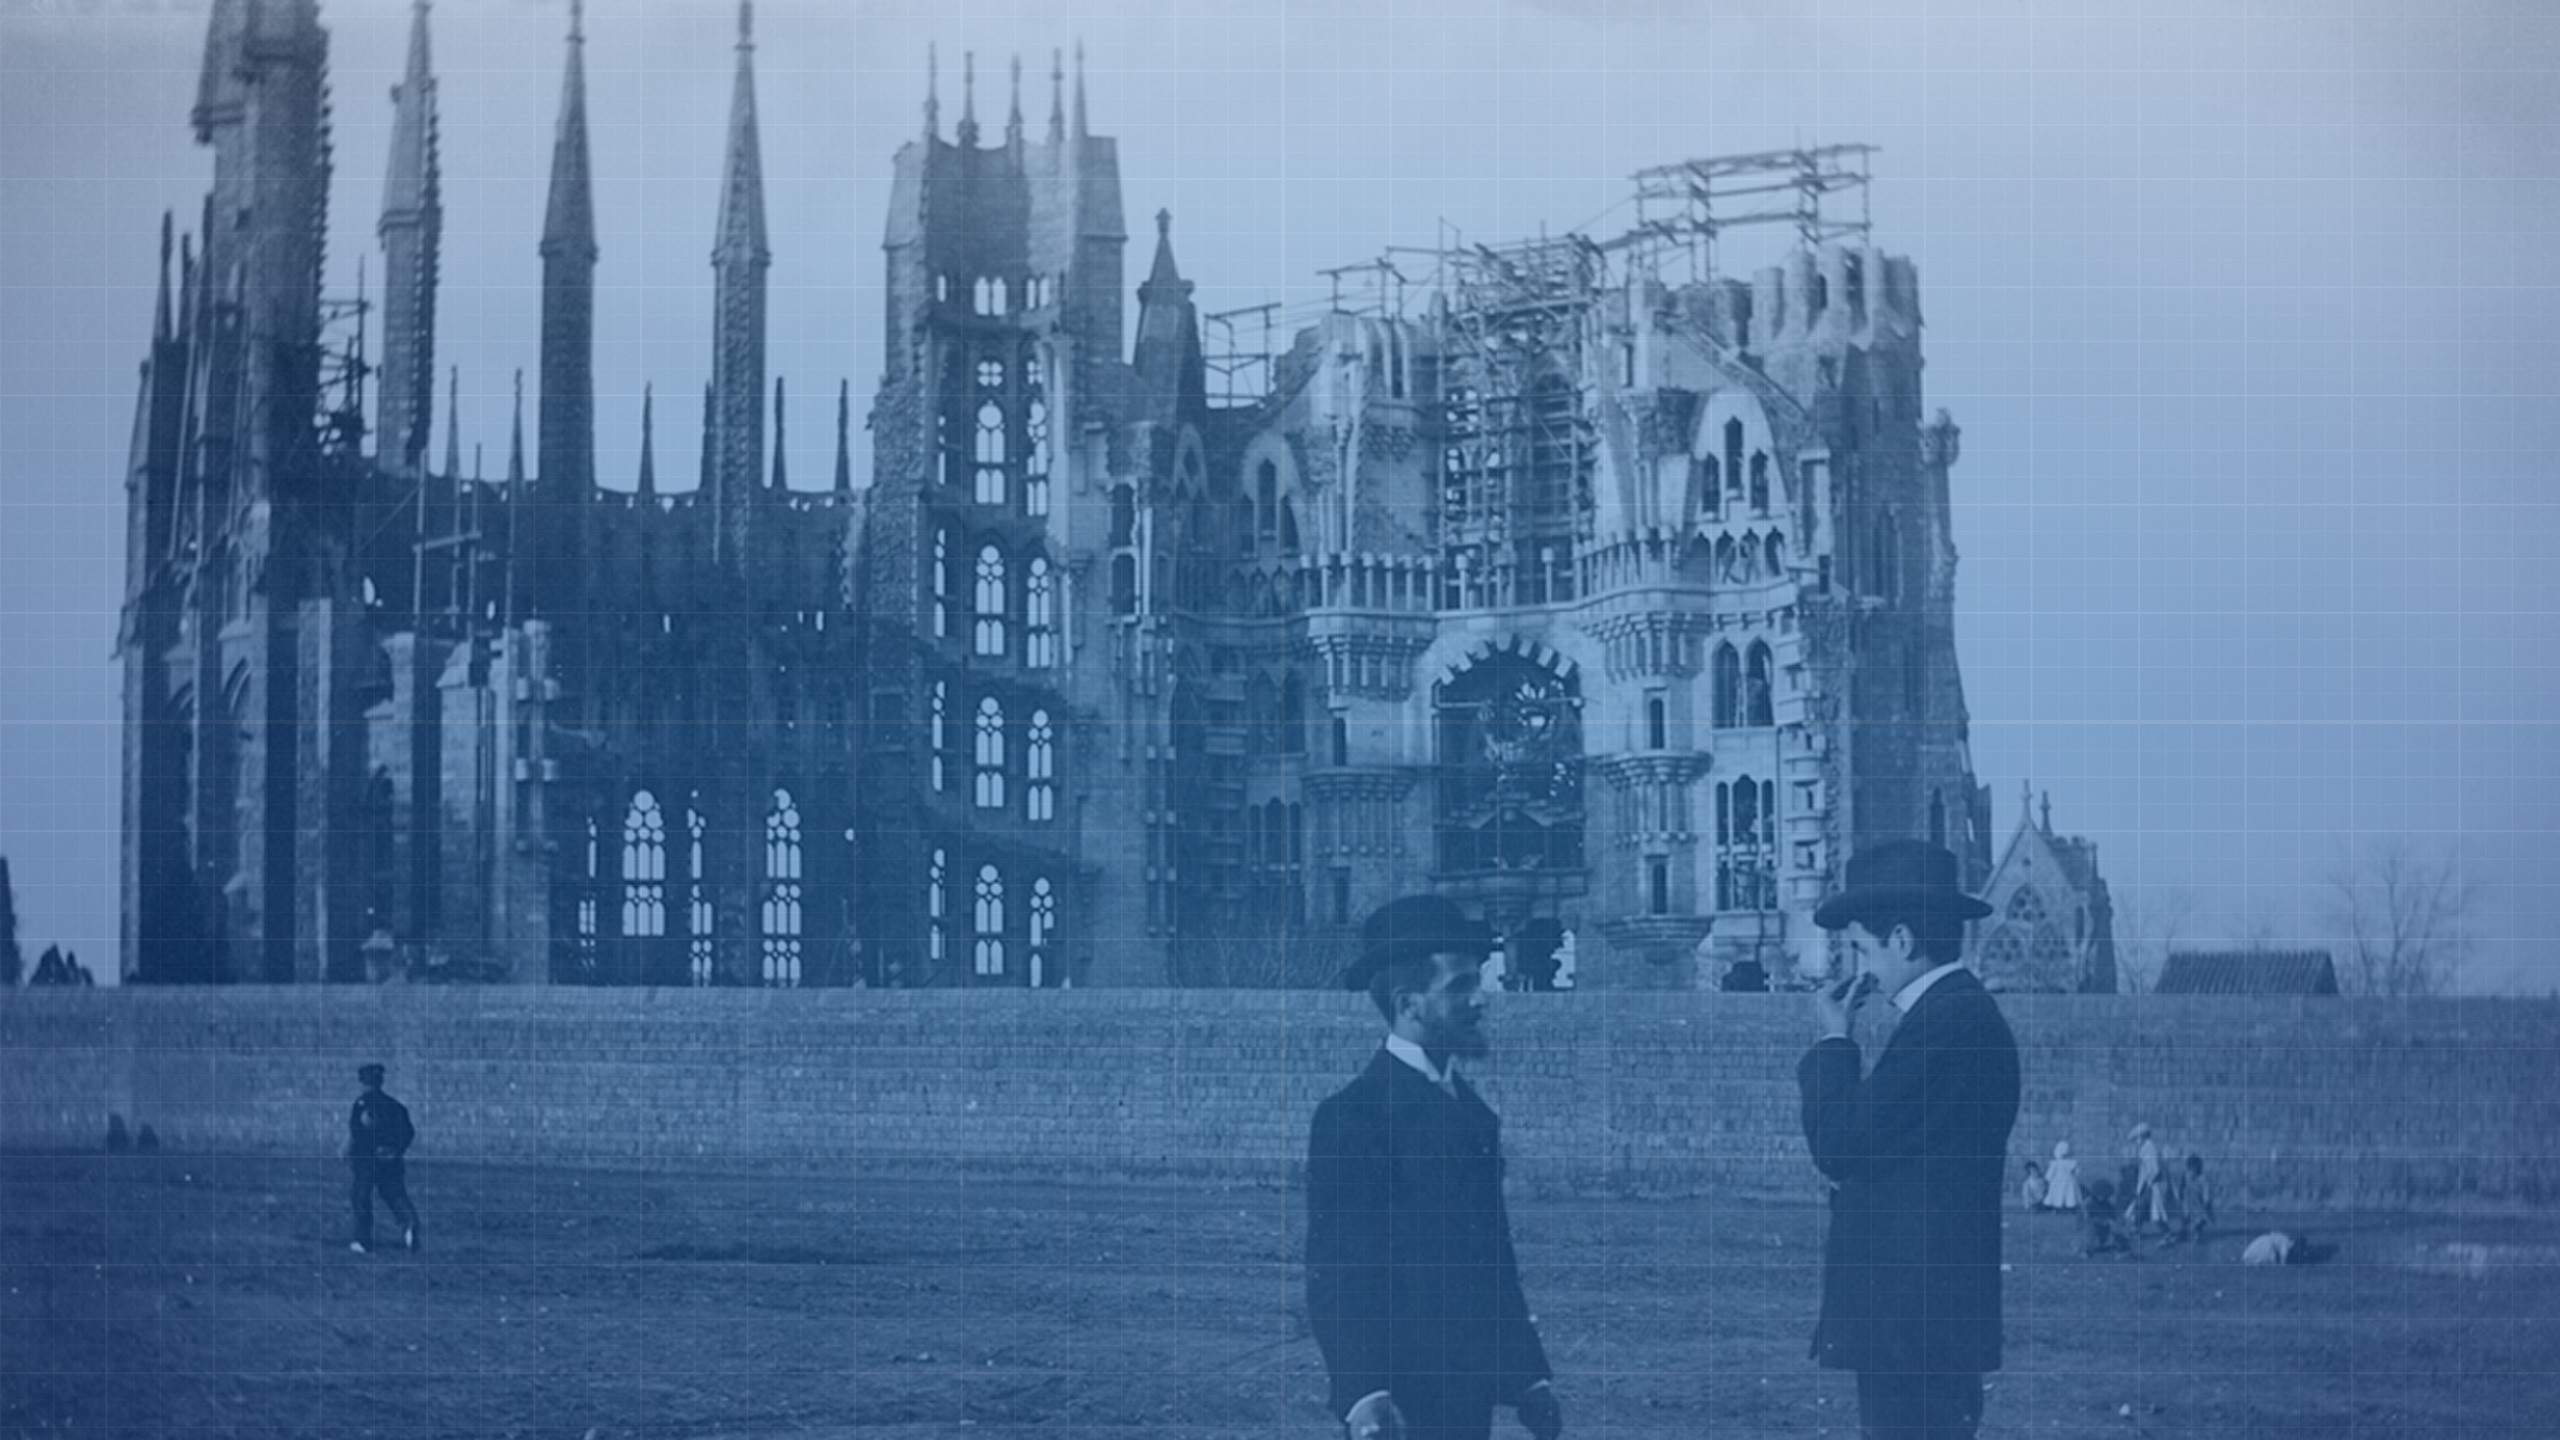 A old photo with the beginnings of the Sagrada Família's construction in the background.